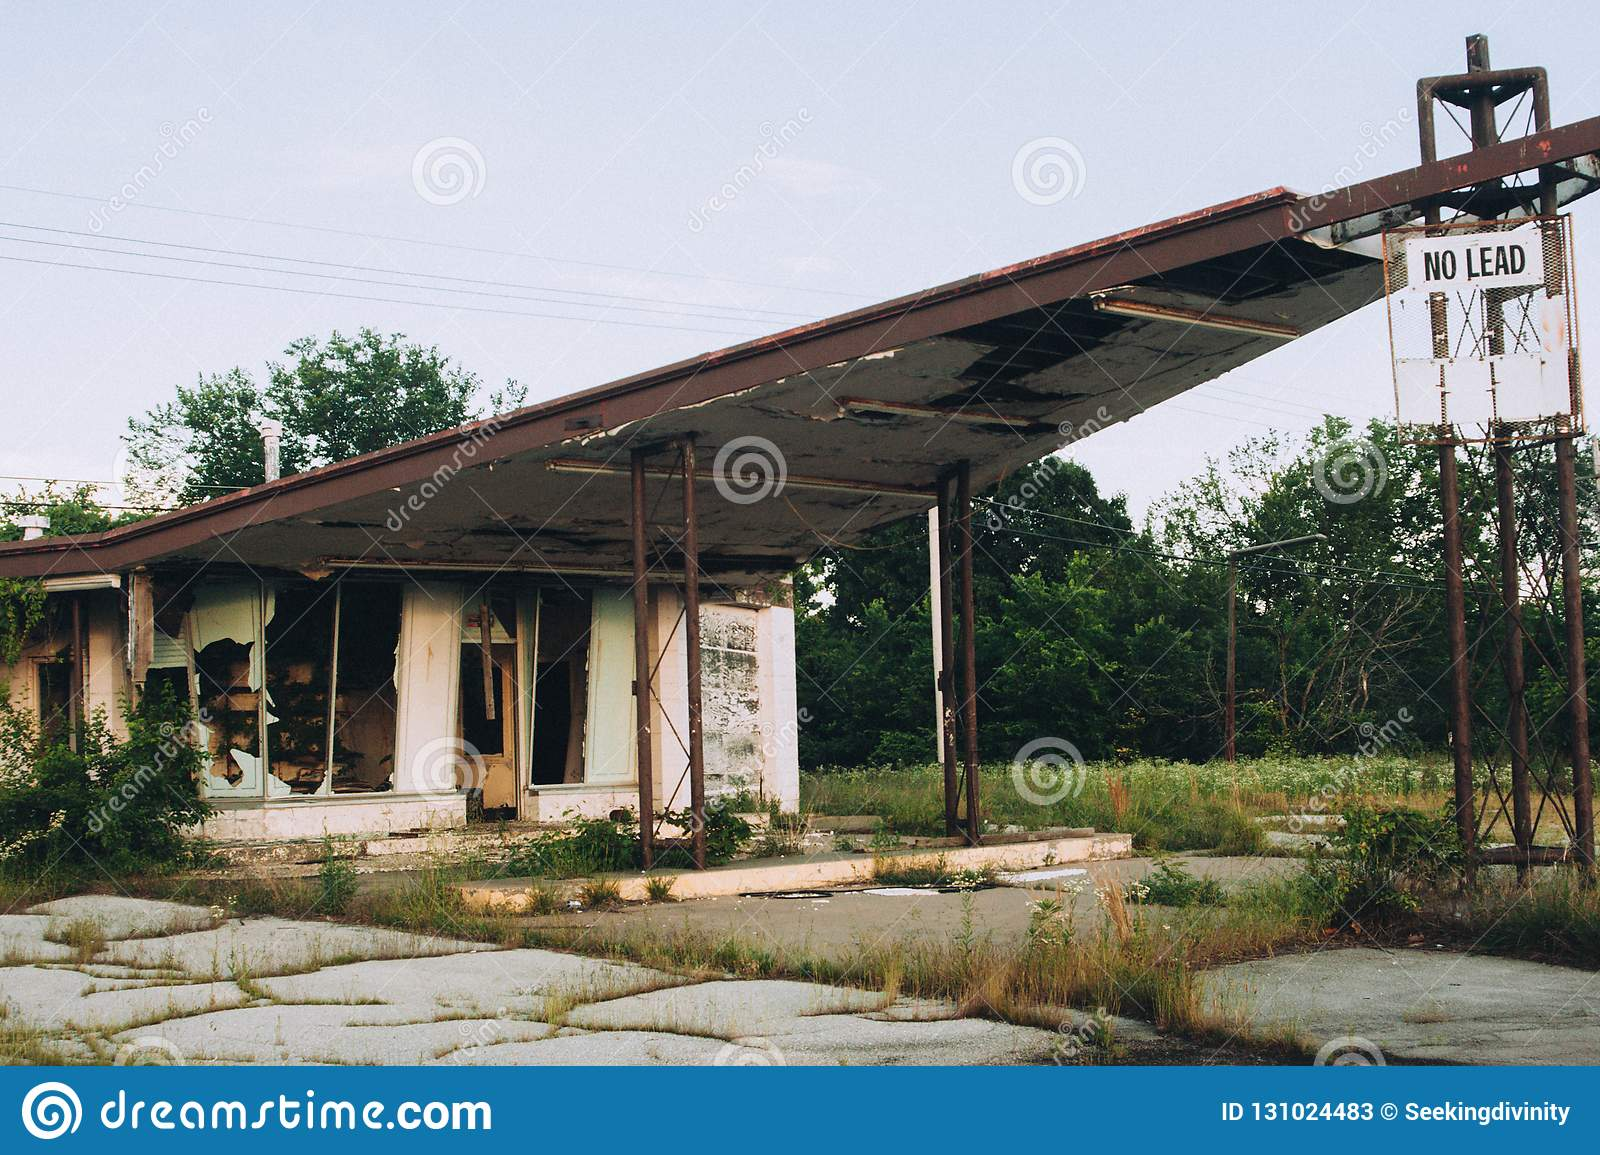 Abandoned Gas Station With Broken Windows Stock Image Image Of Neglect Destruction 131024483